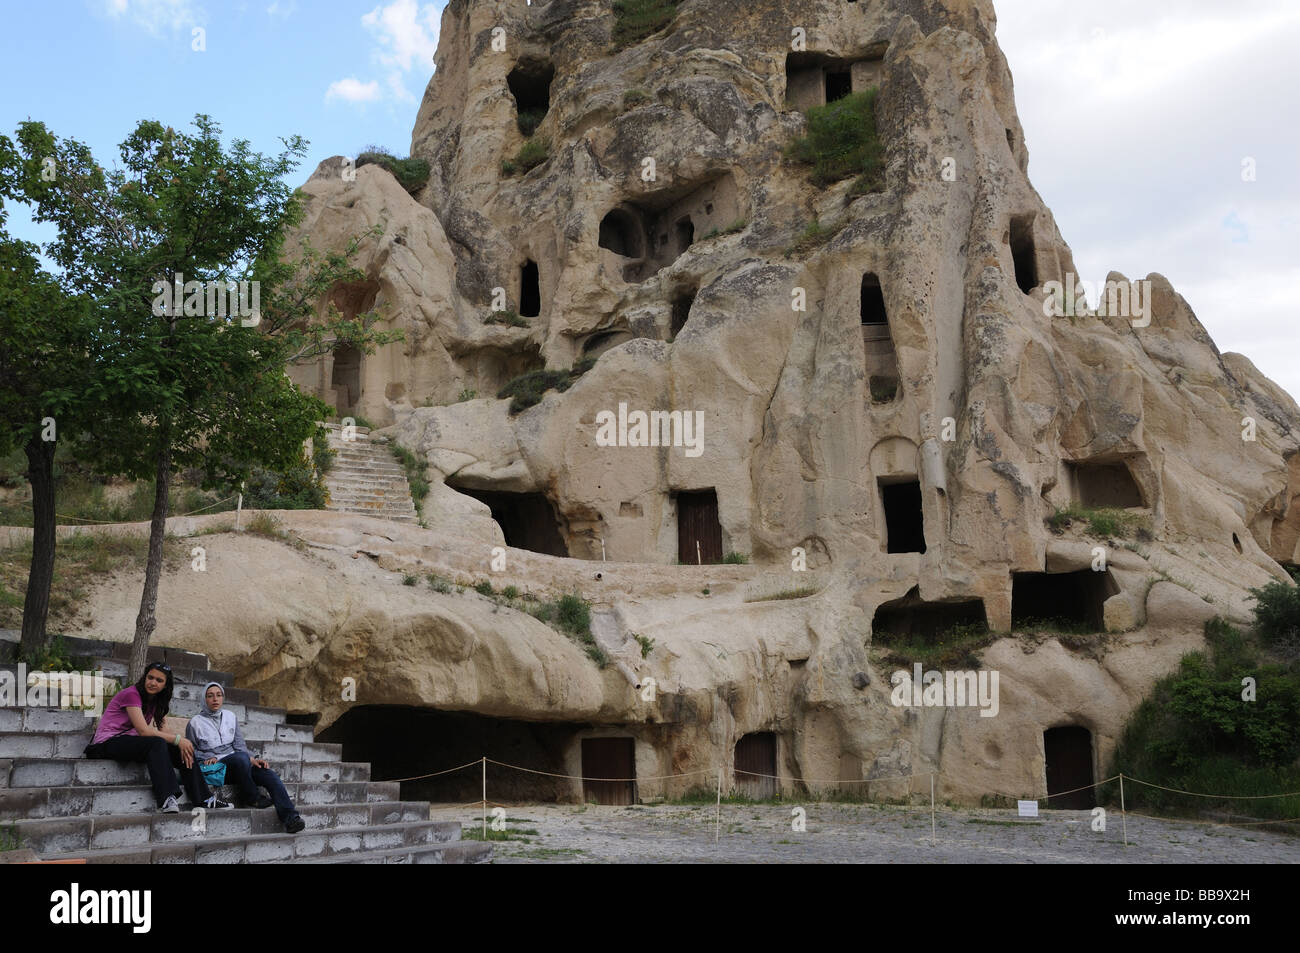 Dwellings and churches at the Goreme Open Air Museum in Cappadocia were hollowed out of volcanic rock between A. - Stock Image